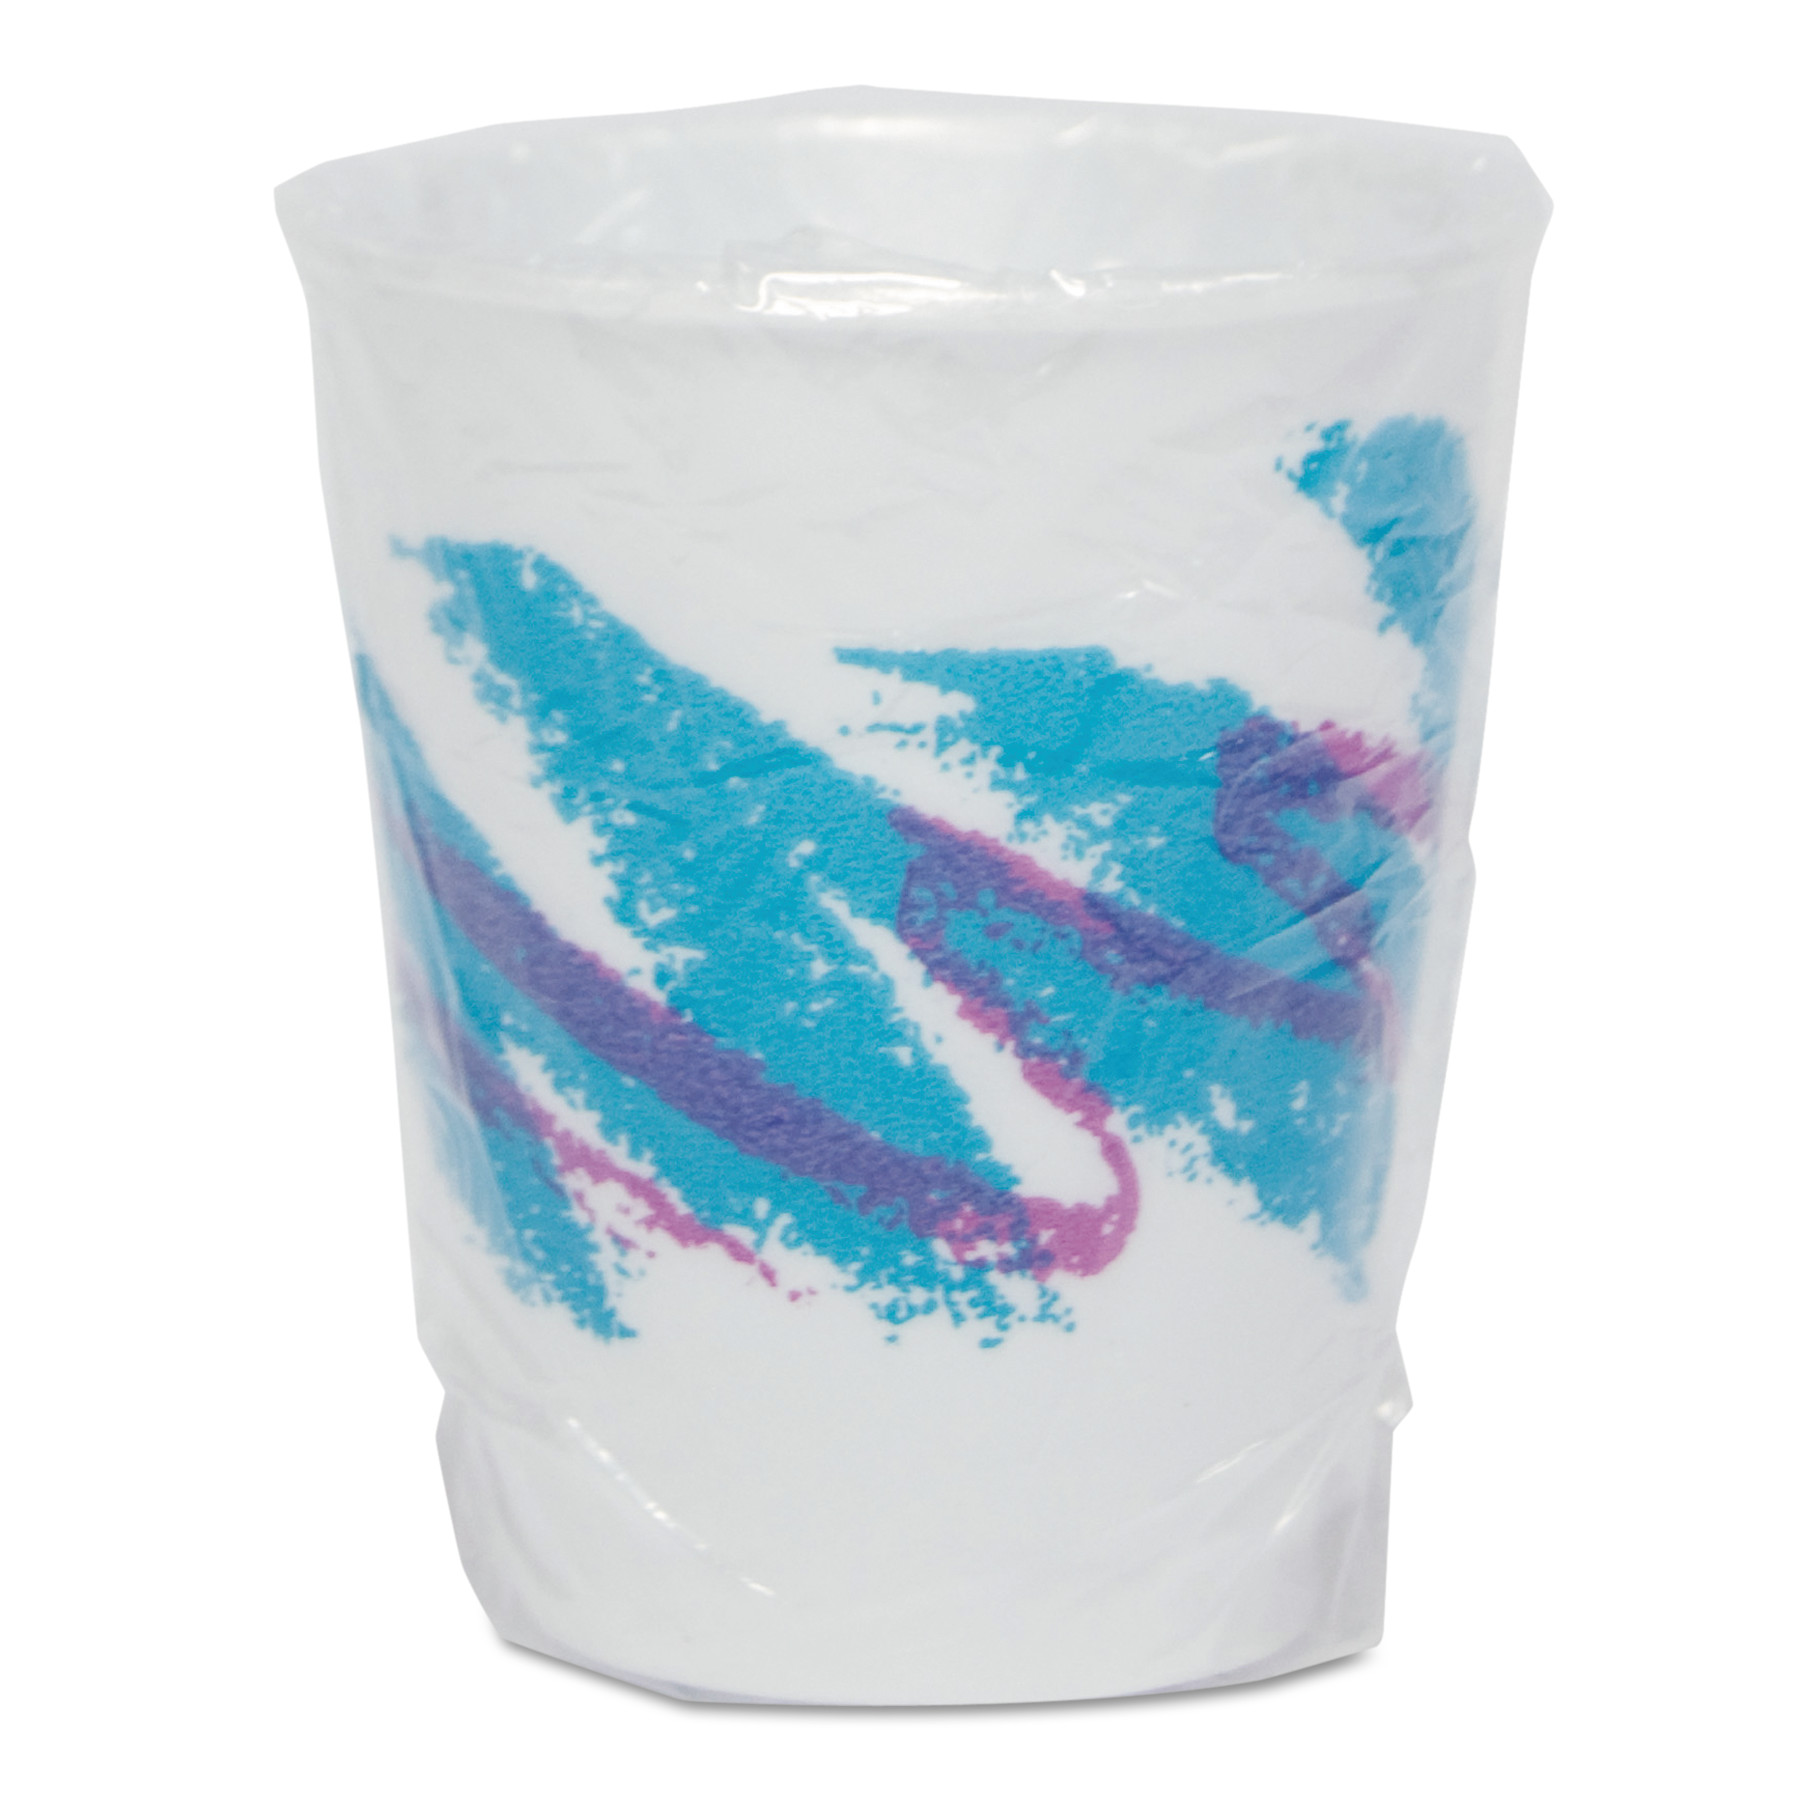 Solo Cup Company Trophy Plus 9 Oz Jazz Design Dual Temp Cups, 900 count by SOLO CUPS